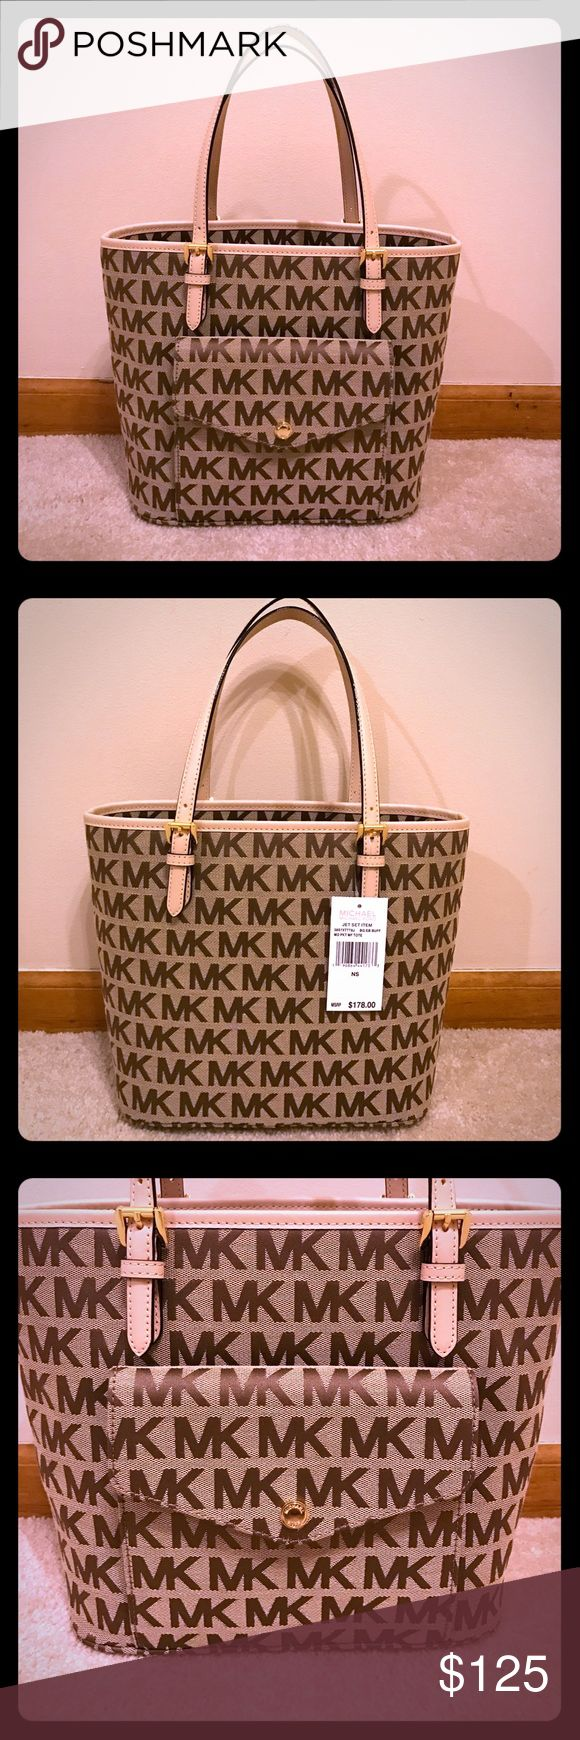 NWT - Michael Kors Medium Sized 👜 Michael Kors - Brand New - Never Used - Tags Attached- Does Not Have MK Charm, I think my niece took it off - Colors: Beige/Buff/Dk Beige  Exterior: 1 Front Magnetic Flip Snap Pocket with 3 Credit Card Slots inside Interior: 1 Big Back Zipper Pocket with 2 Slip Pockets (one for cell phone), Large Center Zip Compartment  Double top handles Gold-tone hardware Michael Kors Bags Totes